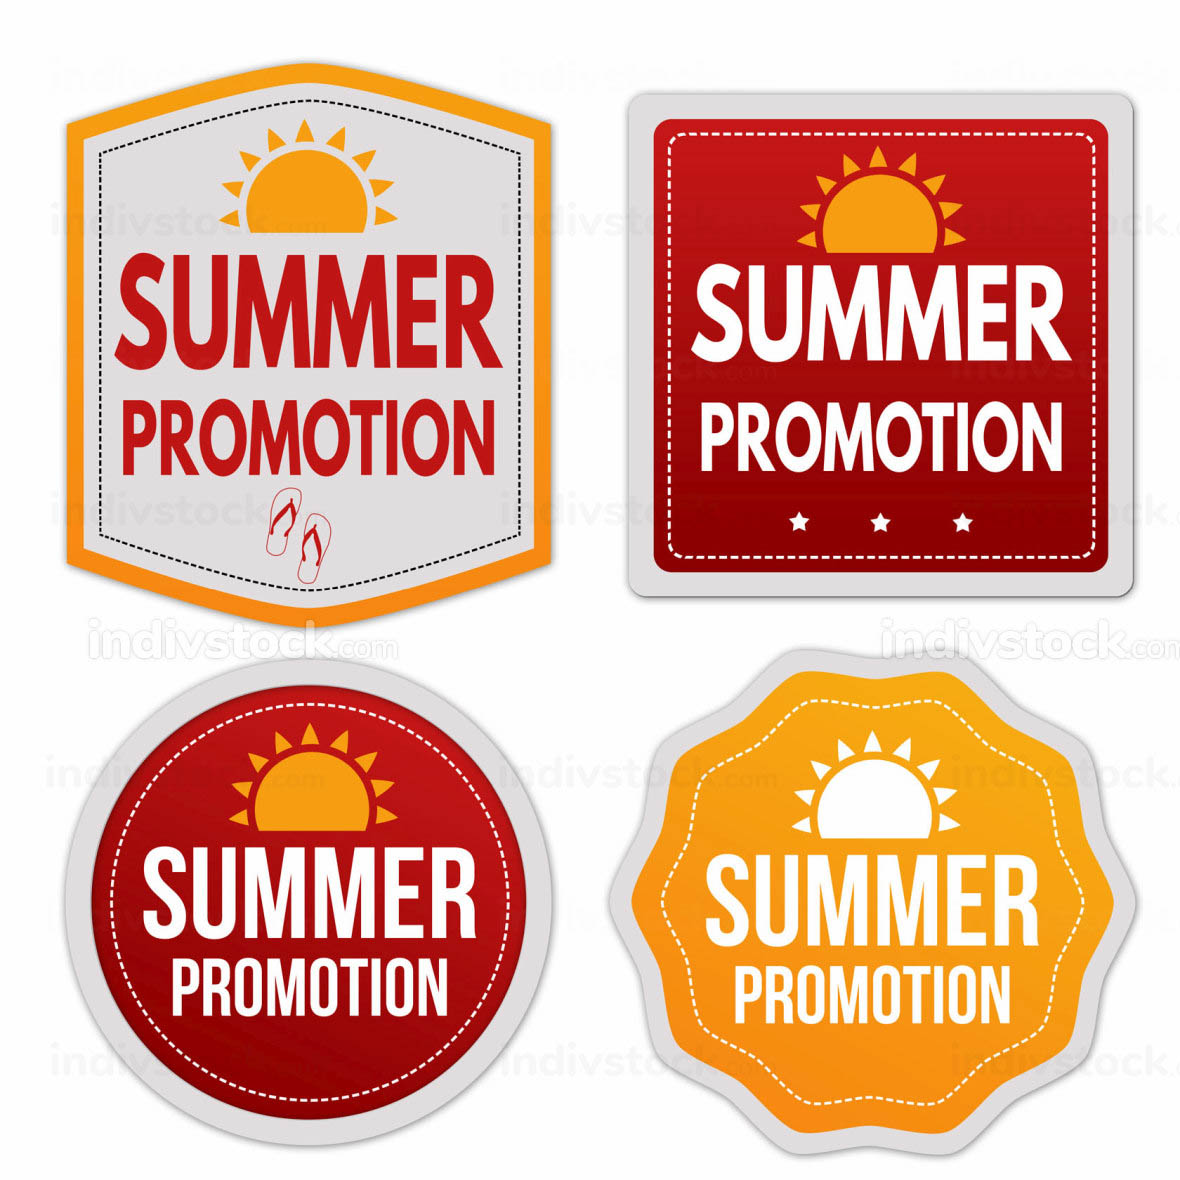 Summer promotion stickers set